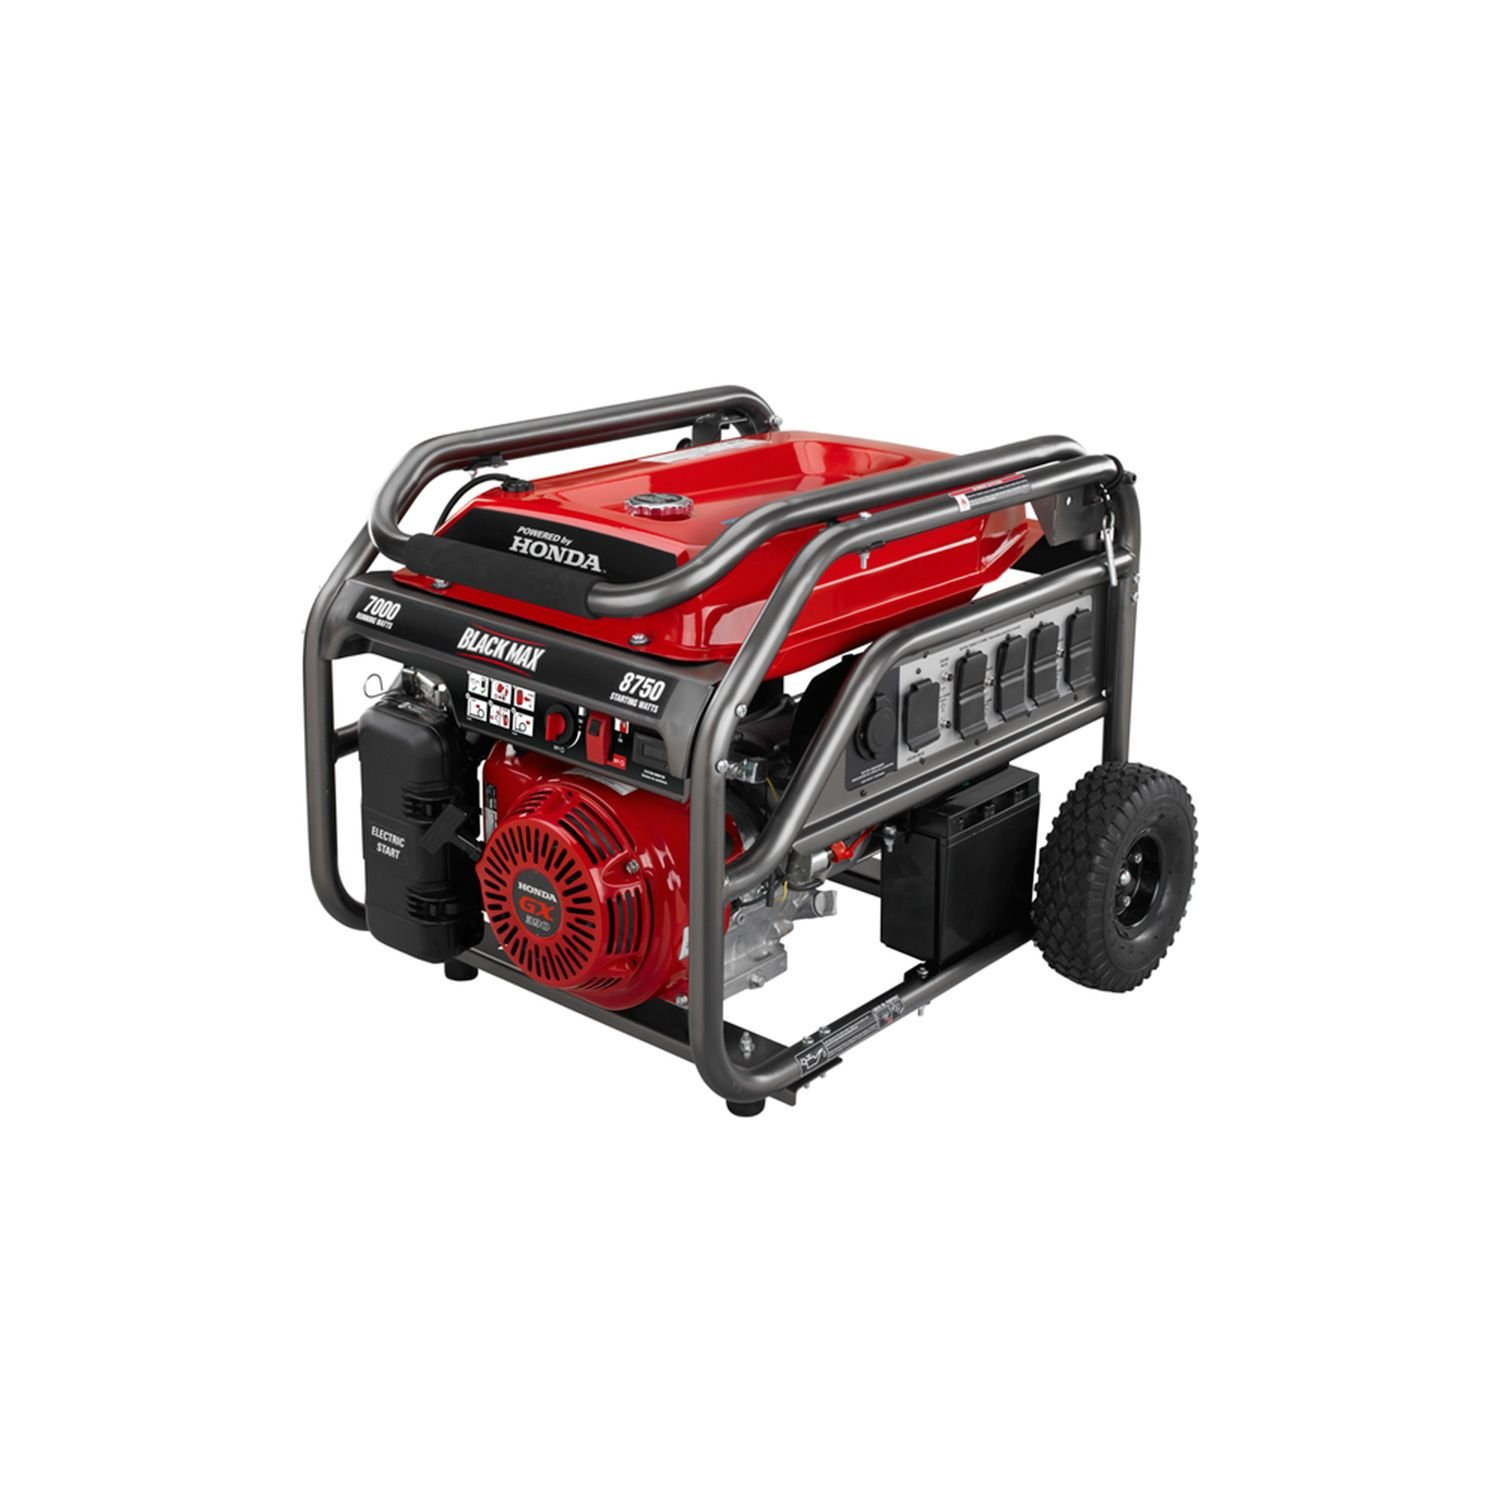 Amazon.com: Blackmax Honda Portable Gas Powered Electric Generator Outdoor  Camping With Electric Start 7,000w / 8,750w Watts: Garden U0026 Outdoor